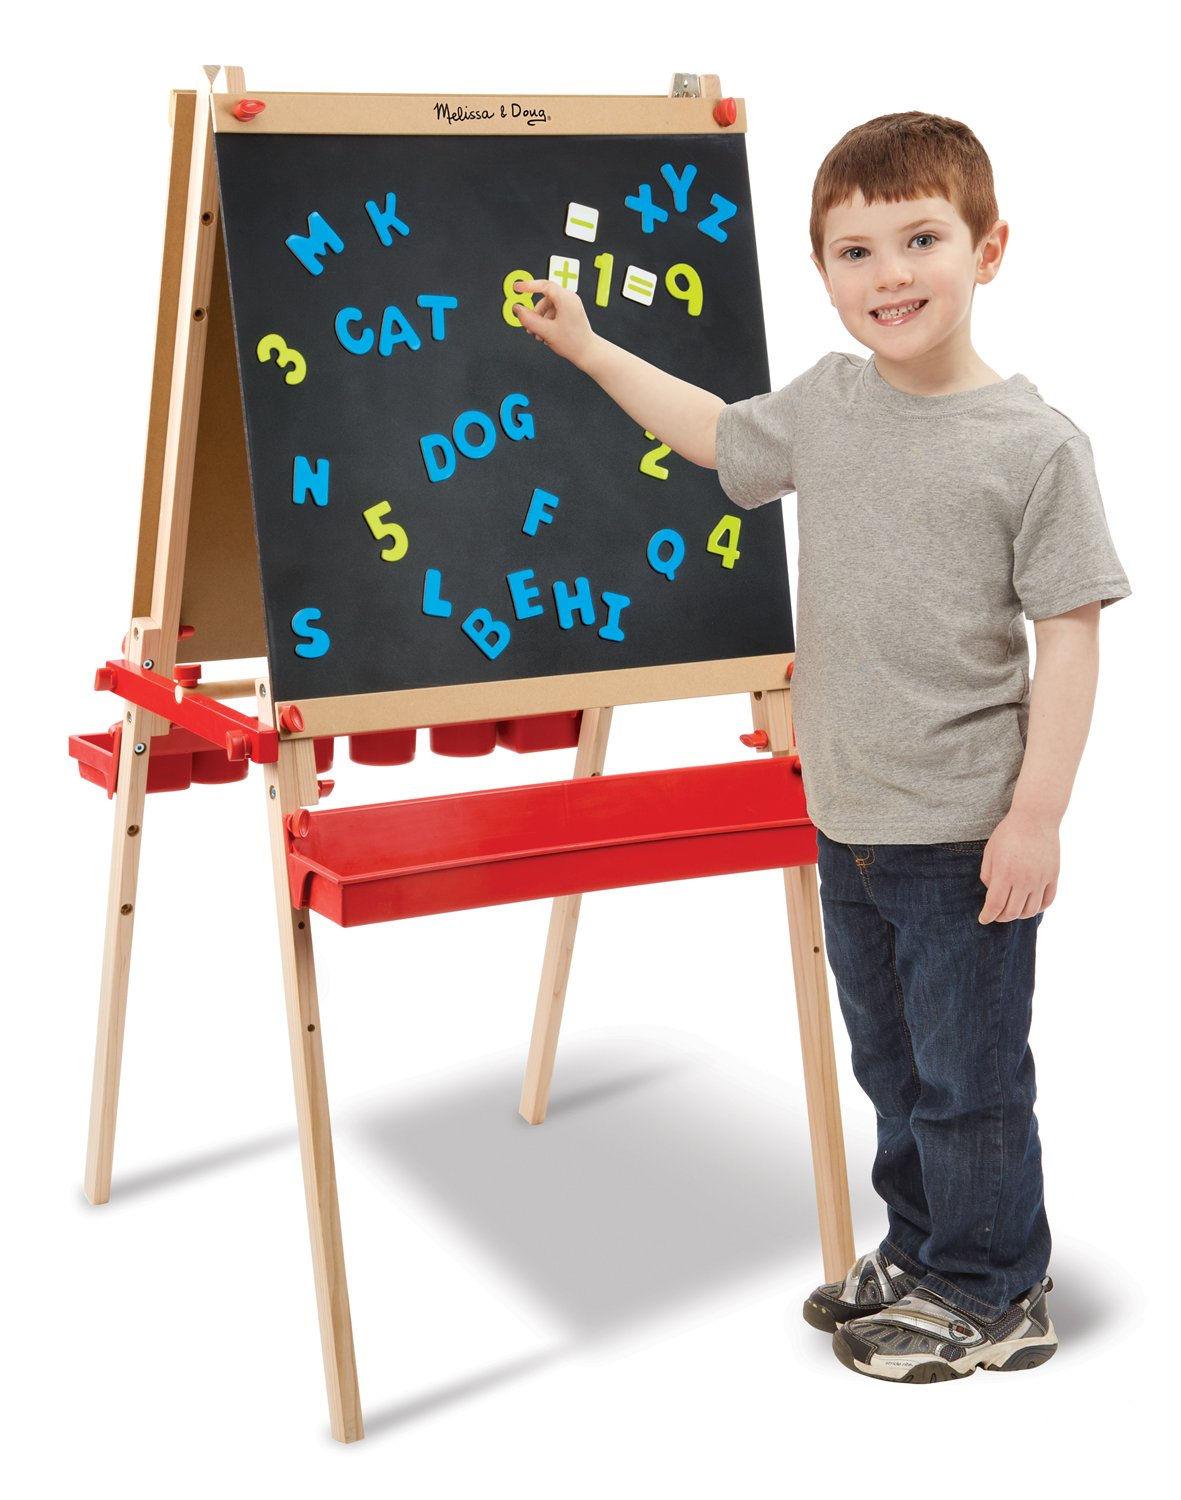 Melissa & Doug Deluxe Magnetic Standing Art Easel With Chalkboard, Dry-Erase Board, and 39 Letter and Number Magnets